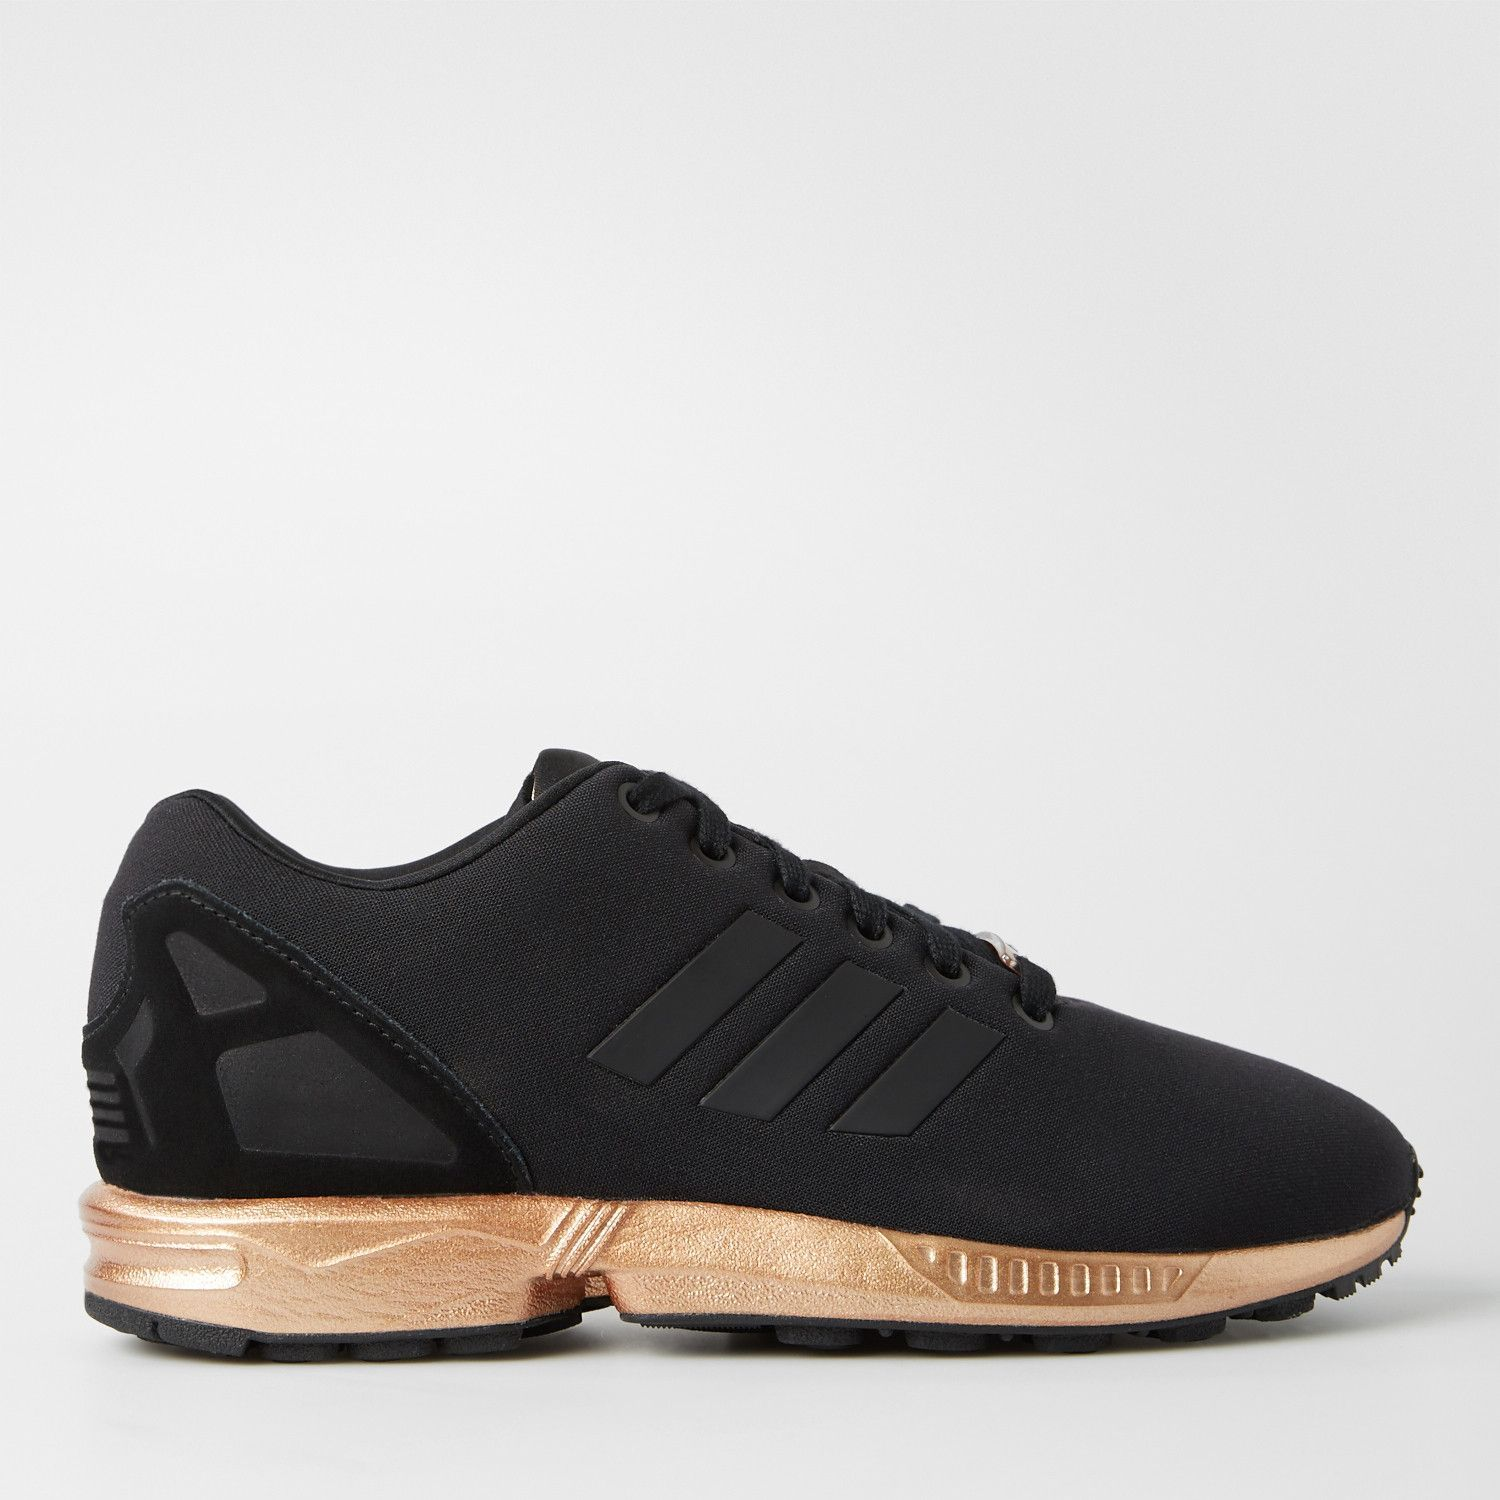 adidas zx flux core black light copper dames